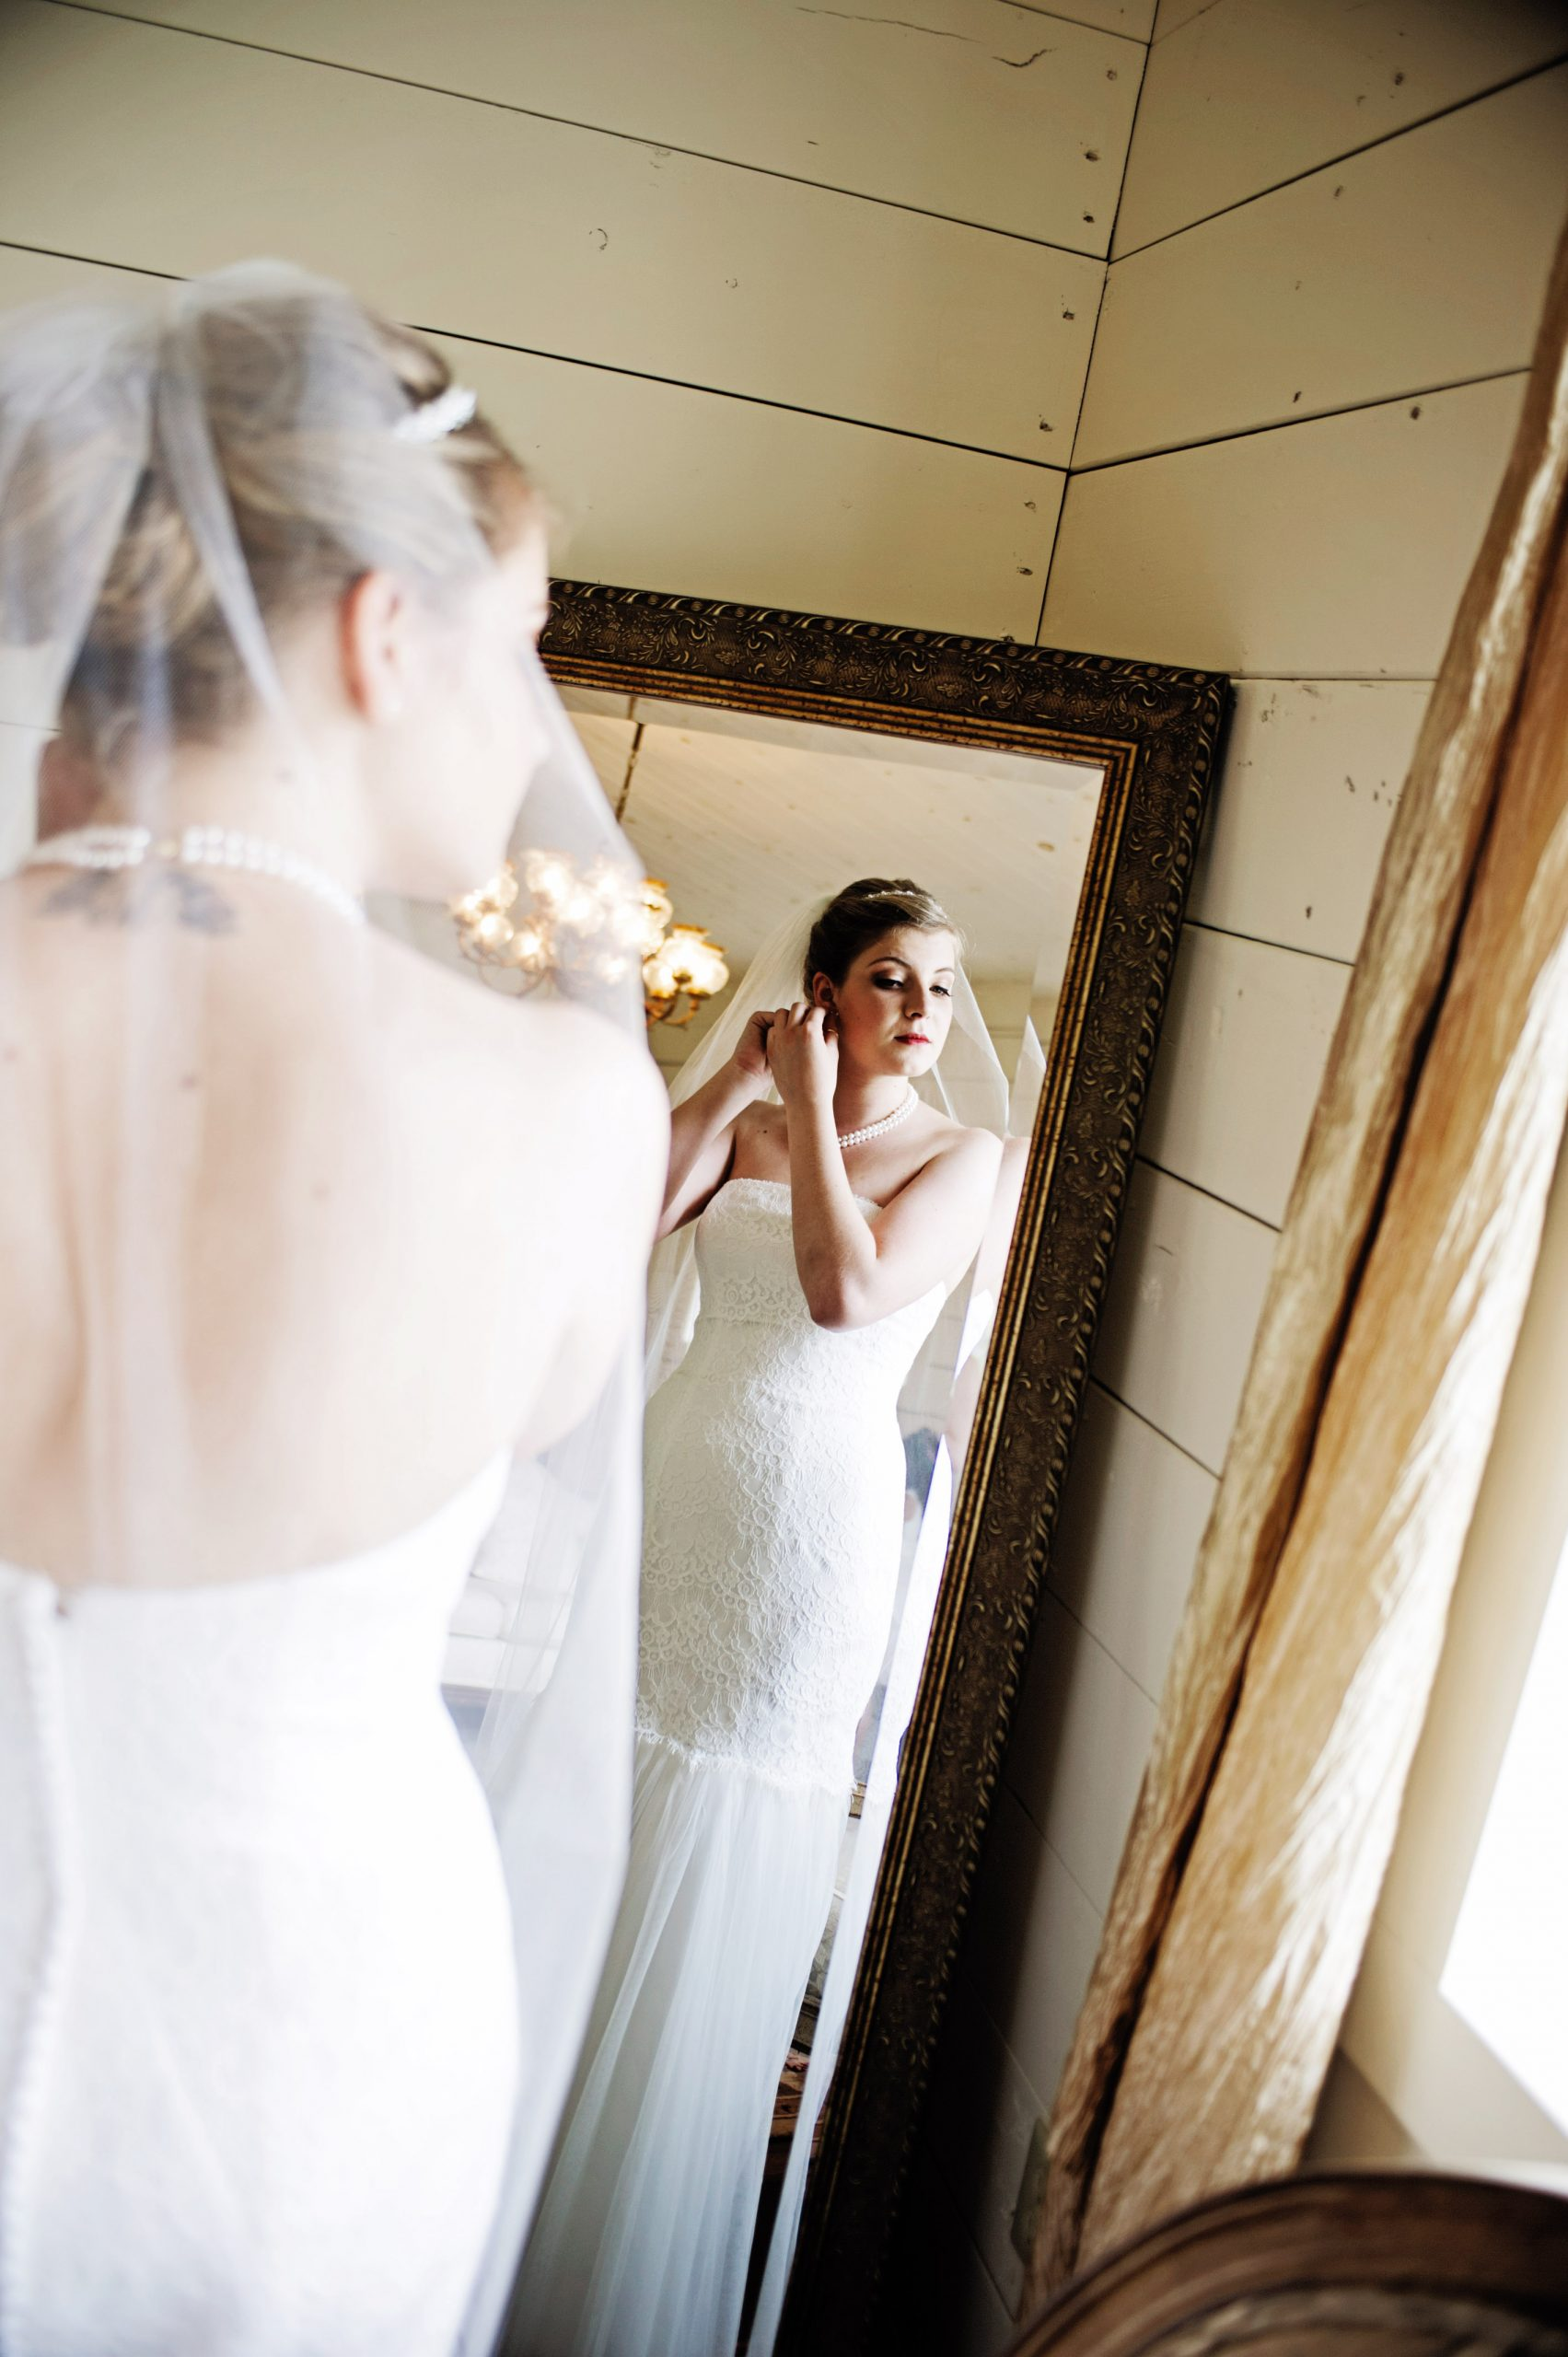 Putting together the last touches, Kady is captured by Lovefusion Photography at Lakeview farms of York, PA. Featured in Dream Weddings.